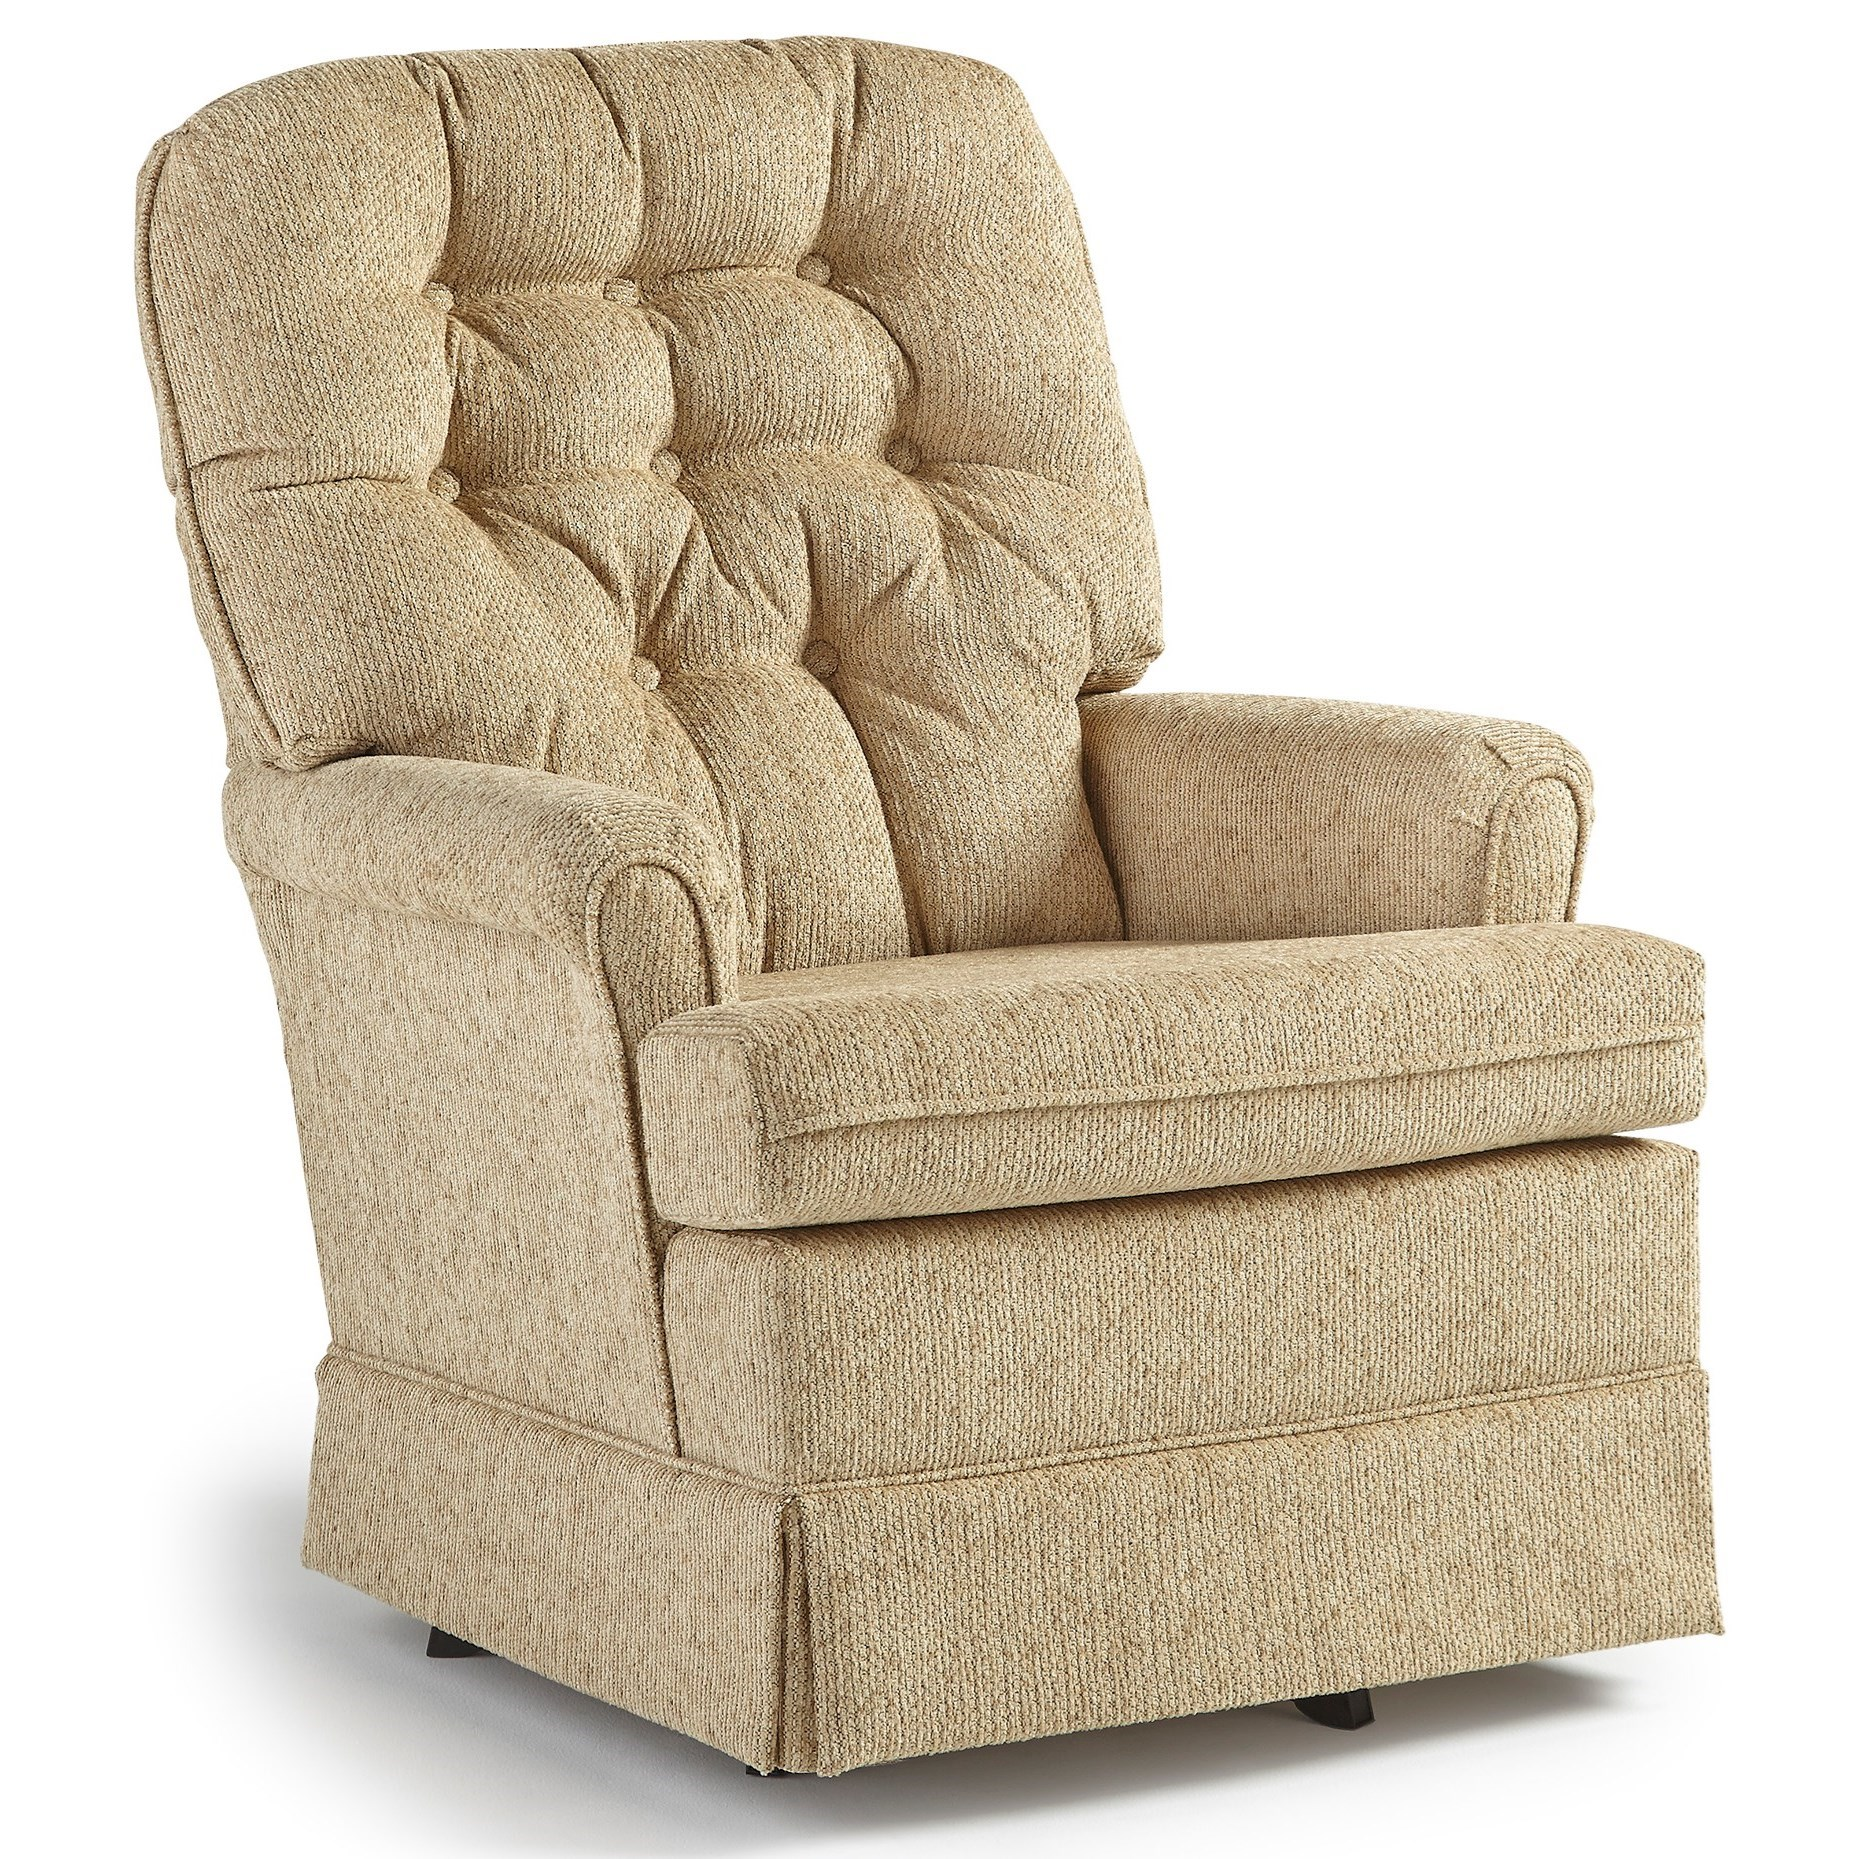 Swivel Rocking Chairs Best Home Furnishings Swivel Glide Chairs Joplin Swivel Rocker